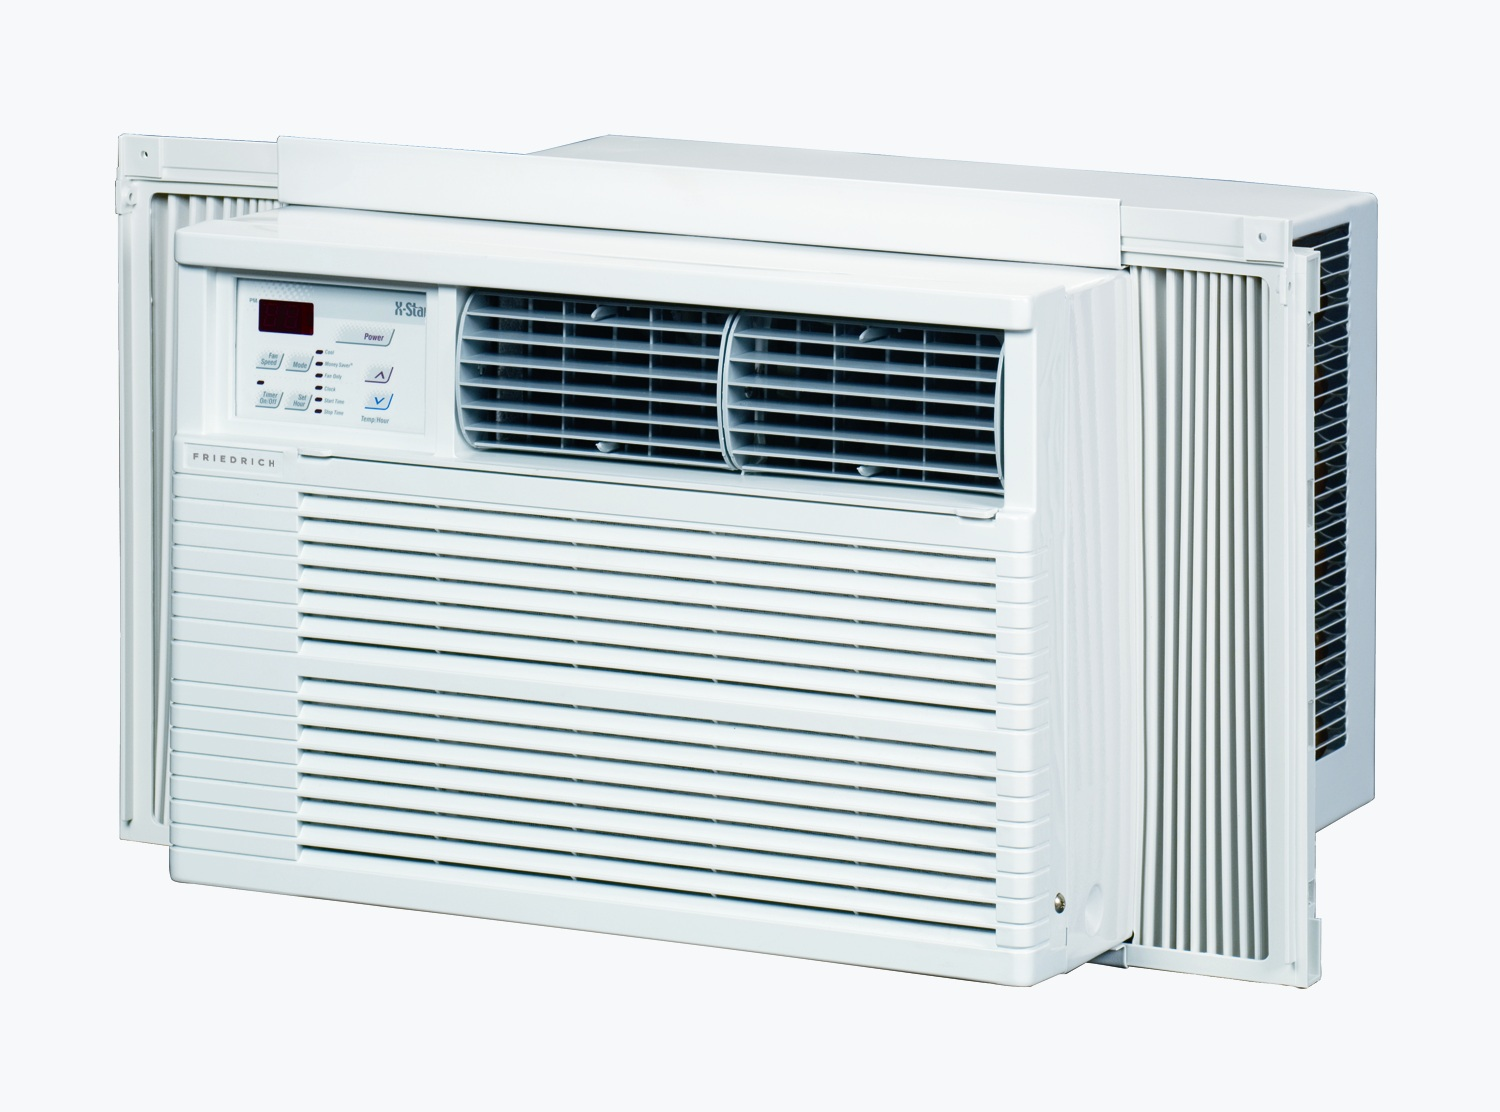 Brand: FRIEDRICH Model: XQ08M10 Style: 7 500 BTU Air Conditioner #121B20